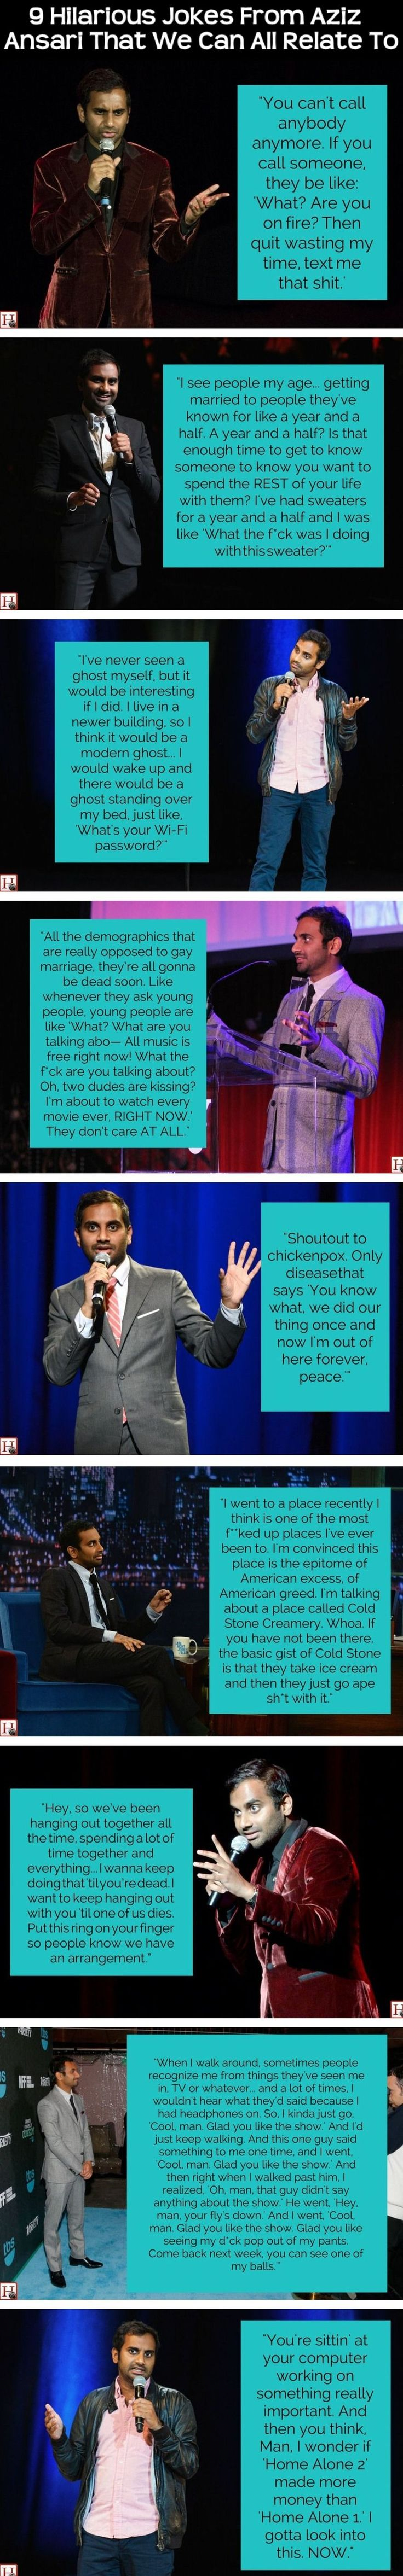 9 Hilarious Jokes From Aziz Ansari That We Can All Relate To